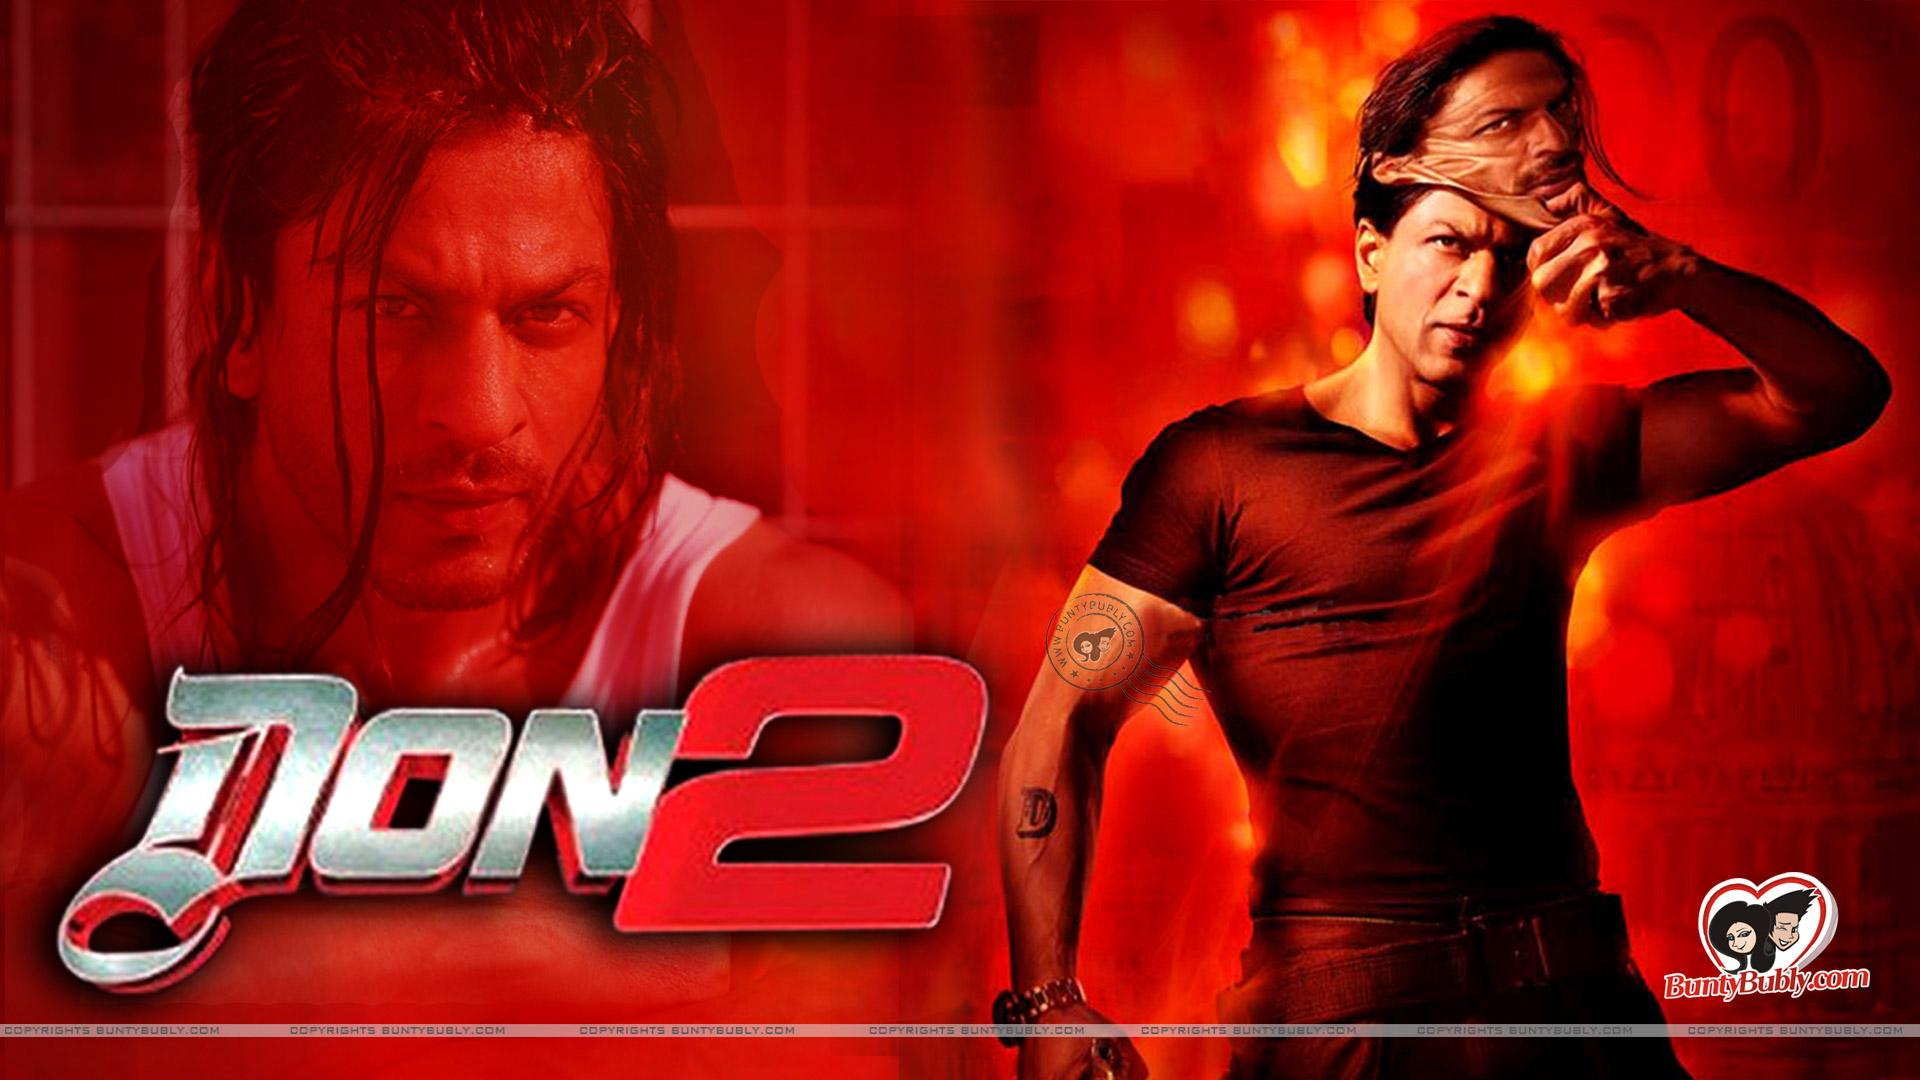 download wallpaper hd bollywood movies gallery